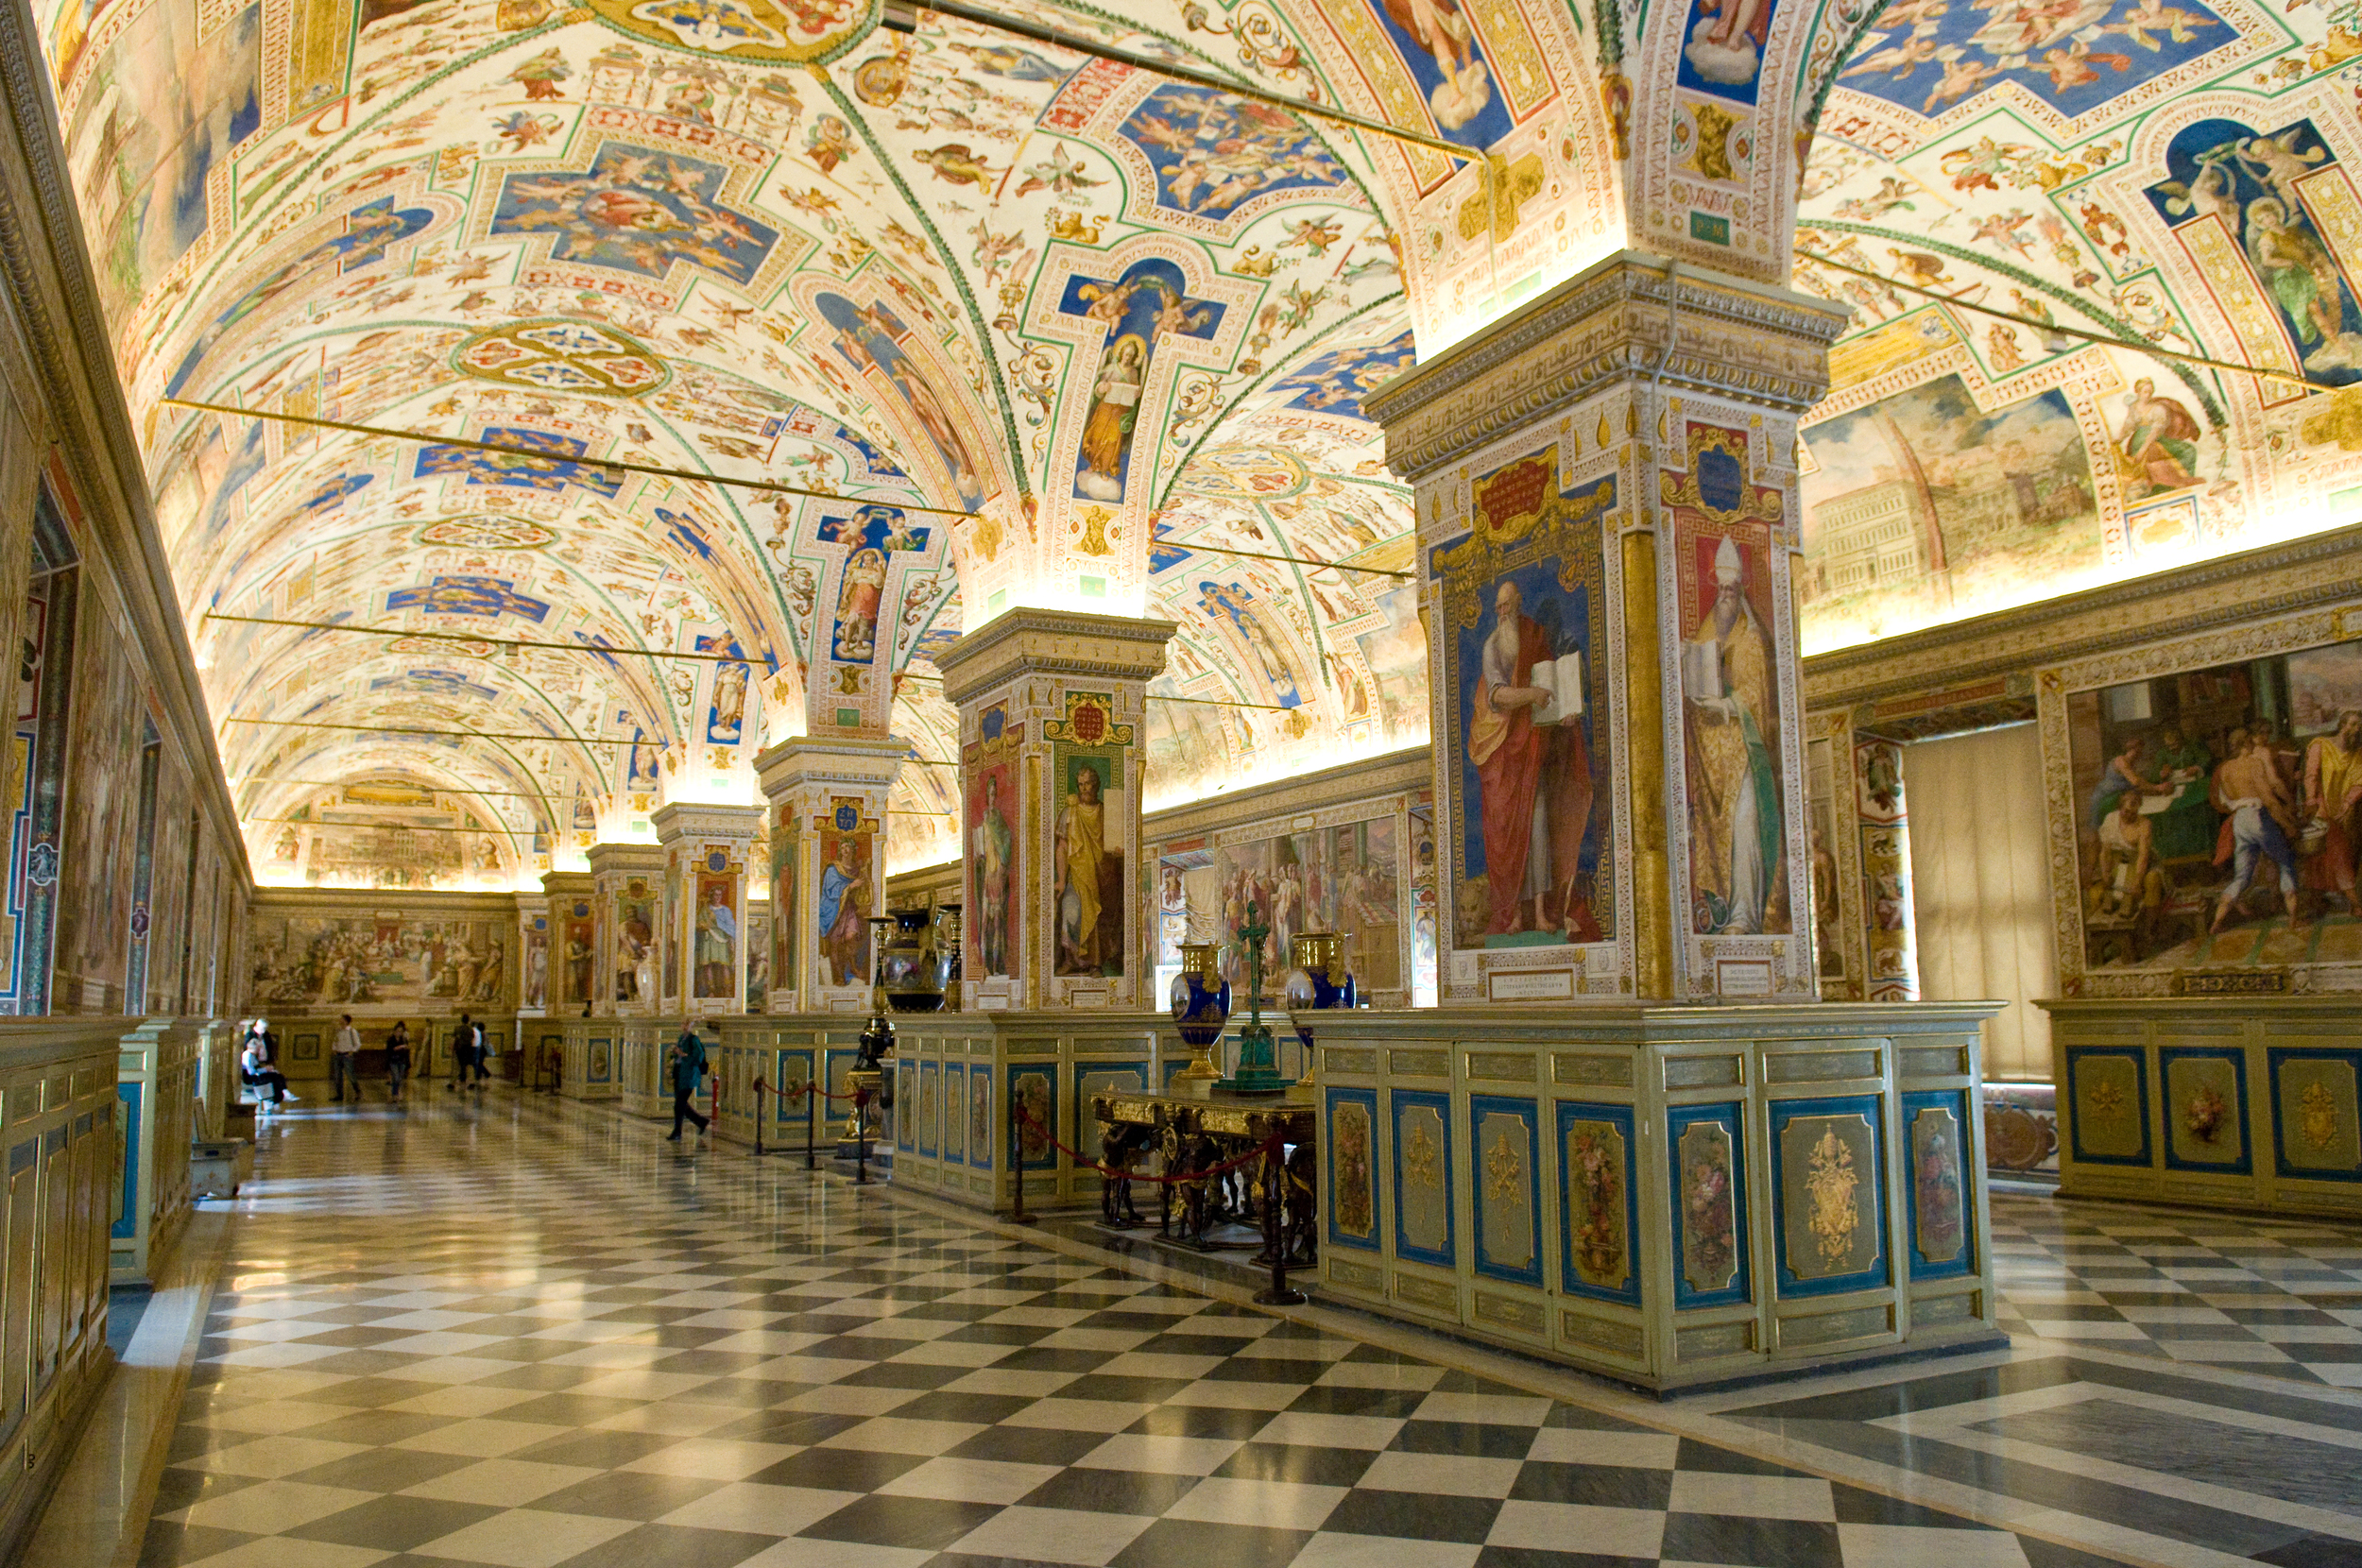 Should The Vatican Sell It's Assets To Help The Poor?   Though no official number is publicly confirmed, financial institutions the world over estimate the Vatican's wealth to be between $10 and $15 billion, making it one of the richest, tax-exempt organizations on the planet. With such extensive monetary resources and so much poverty in the world, one must ask why an institution that prides itself on morals of compassion and giving would choose to retain so many of its assets rather than liquidate and use the funds to help those in need.